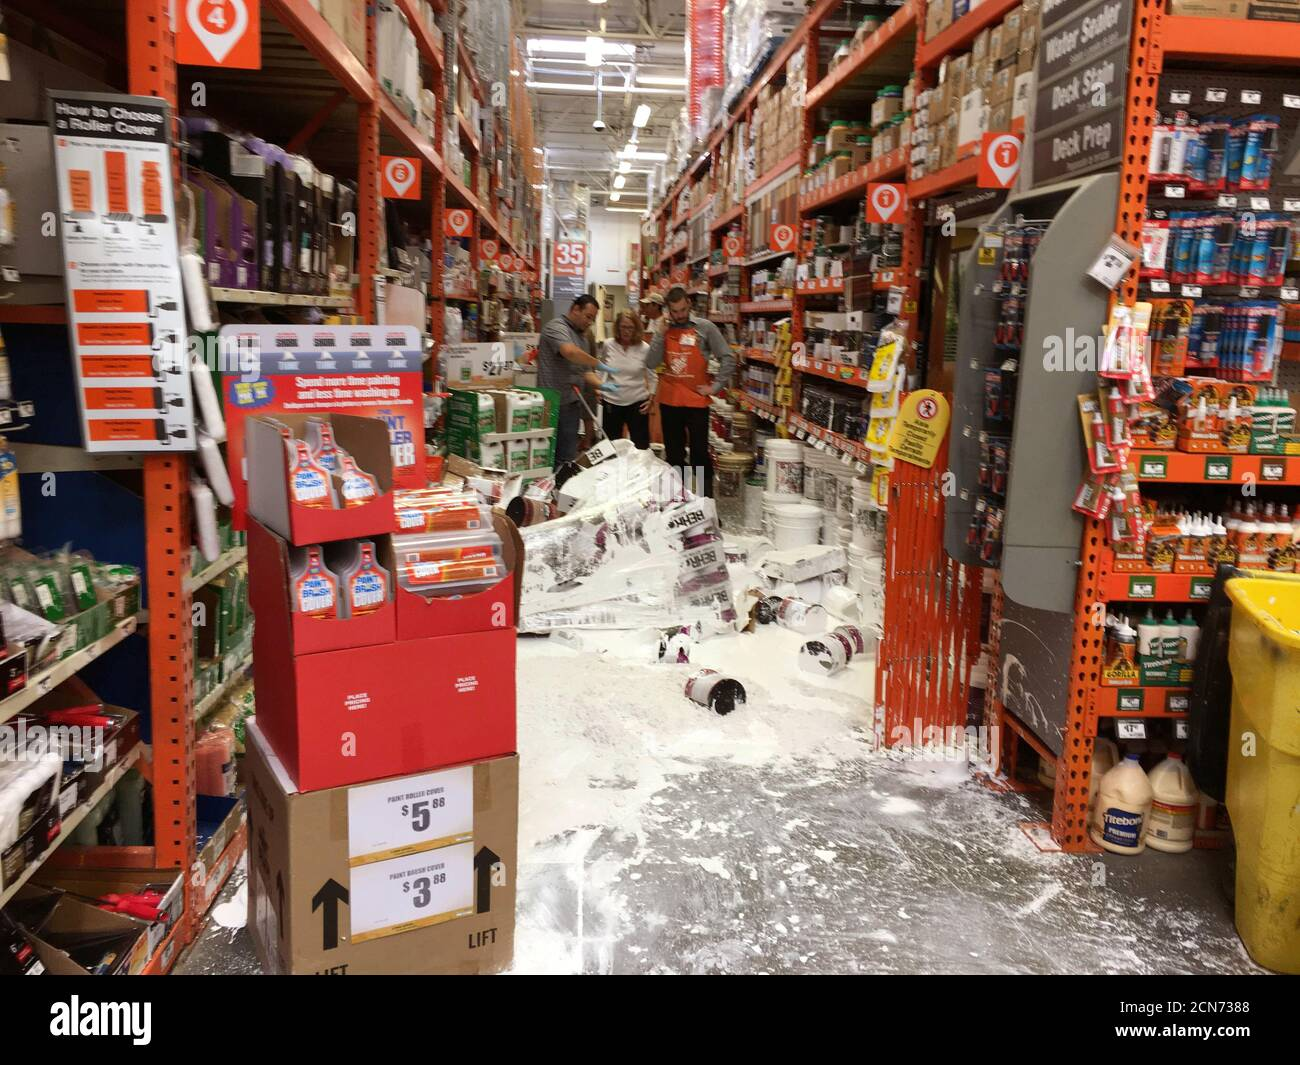 Home Depot Aisle High Resolution Stock Photography and Images   Alamy